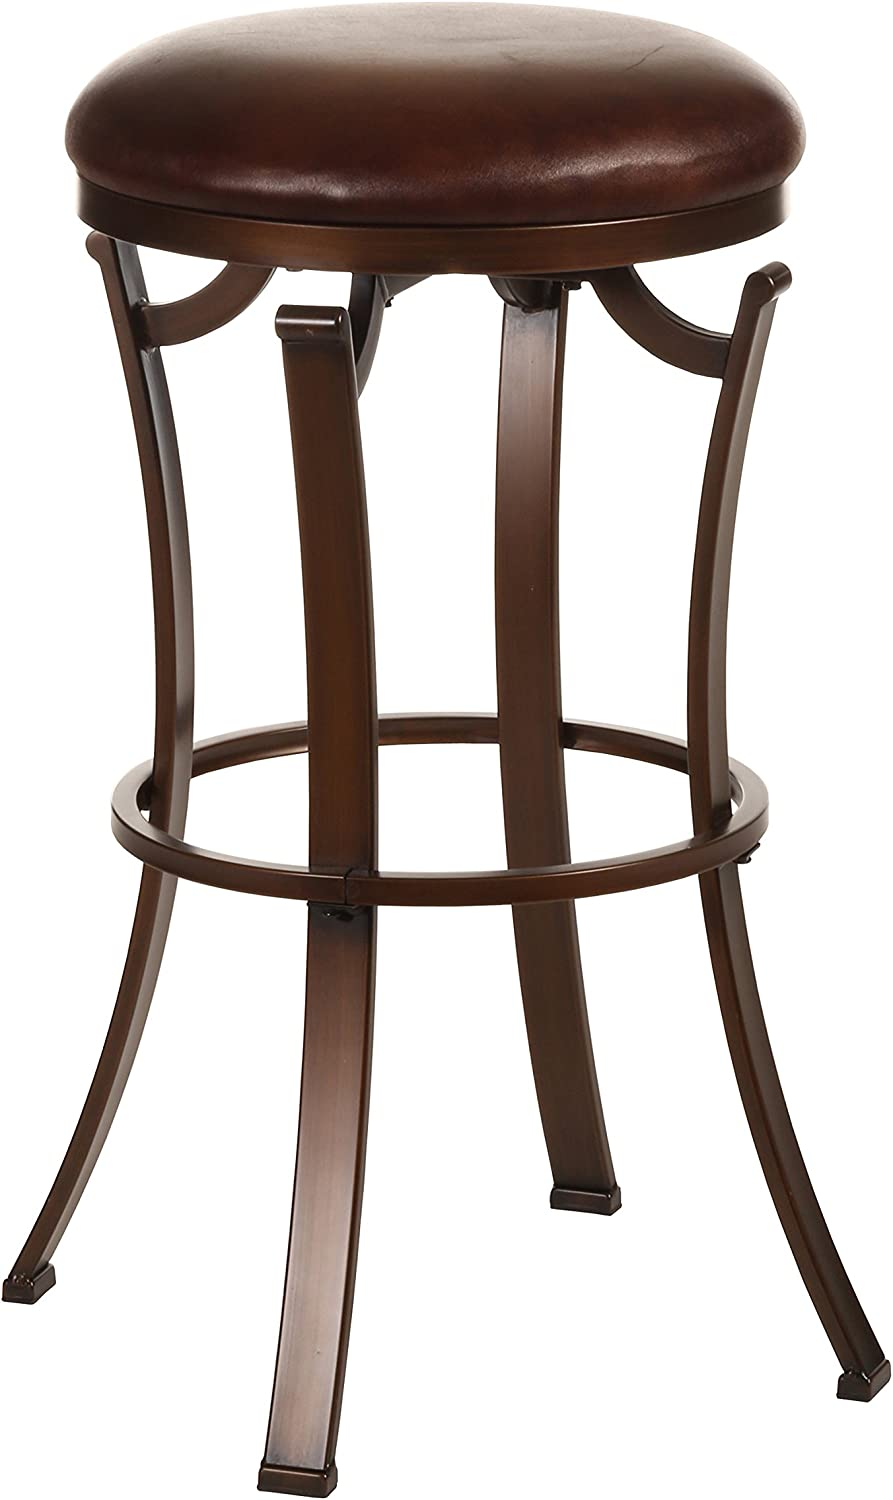 Hillsdale Kelford Backless Swivel Bar Stool, Antique Bronze